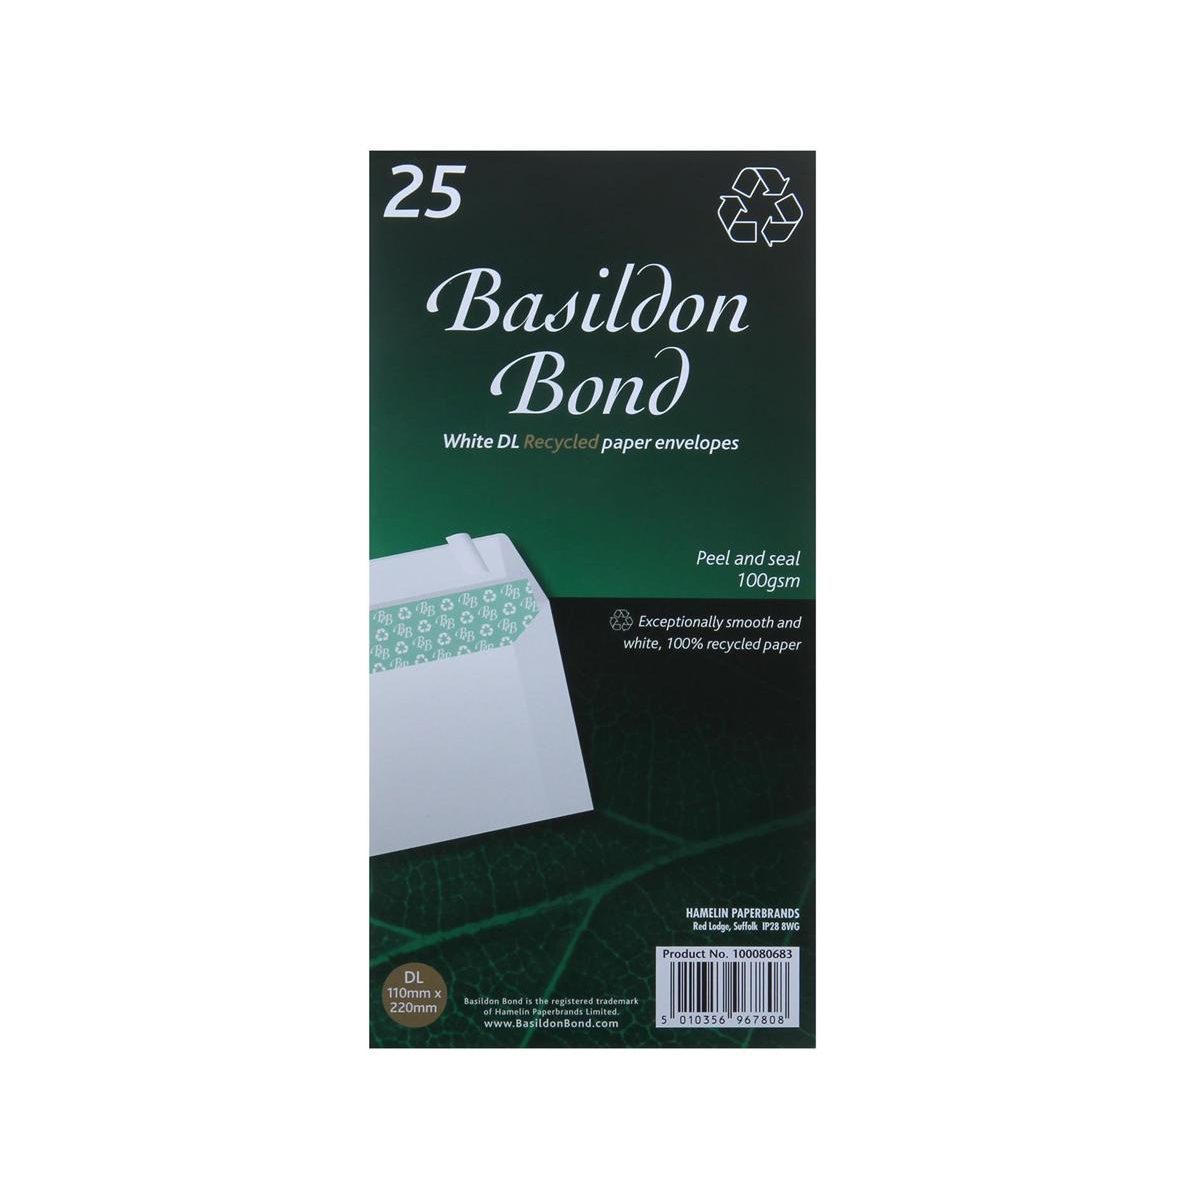 Basildon Bond Envelopes Recycled Wallet Peel and Seal Window 120gsm DL White Ref A80117 Pack 500